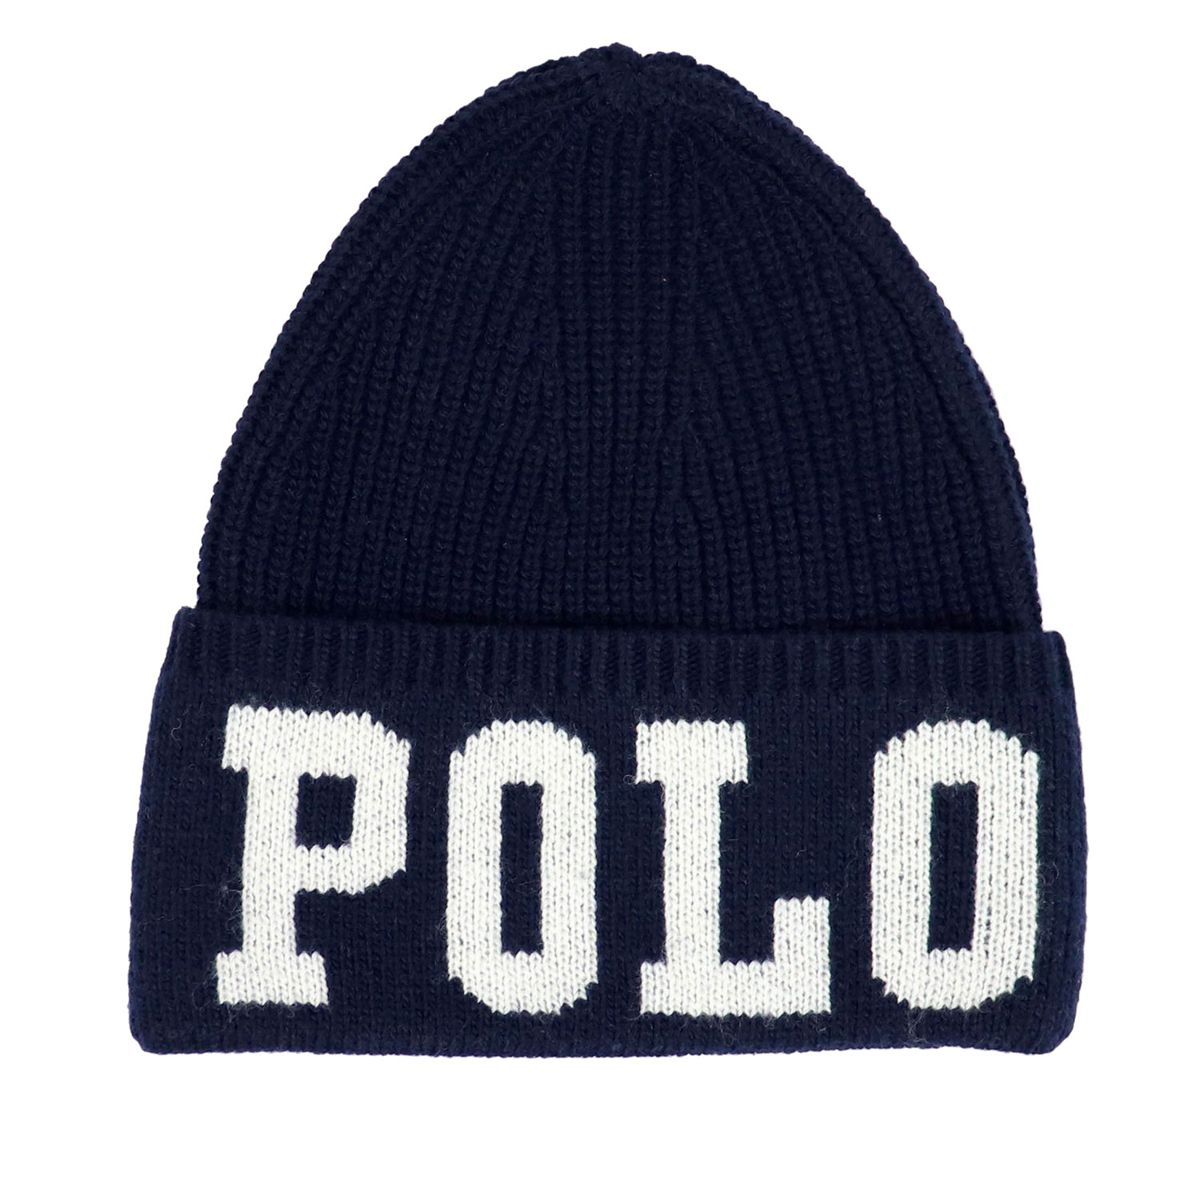 Wool cap with turn-up and contrast logo Blue Polo Ralph Lauren